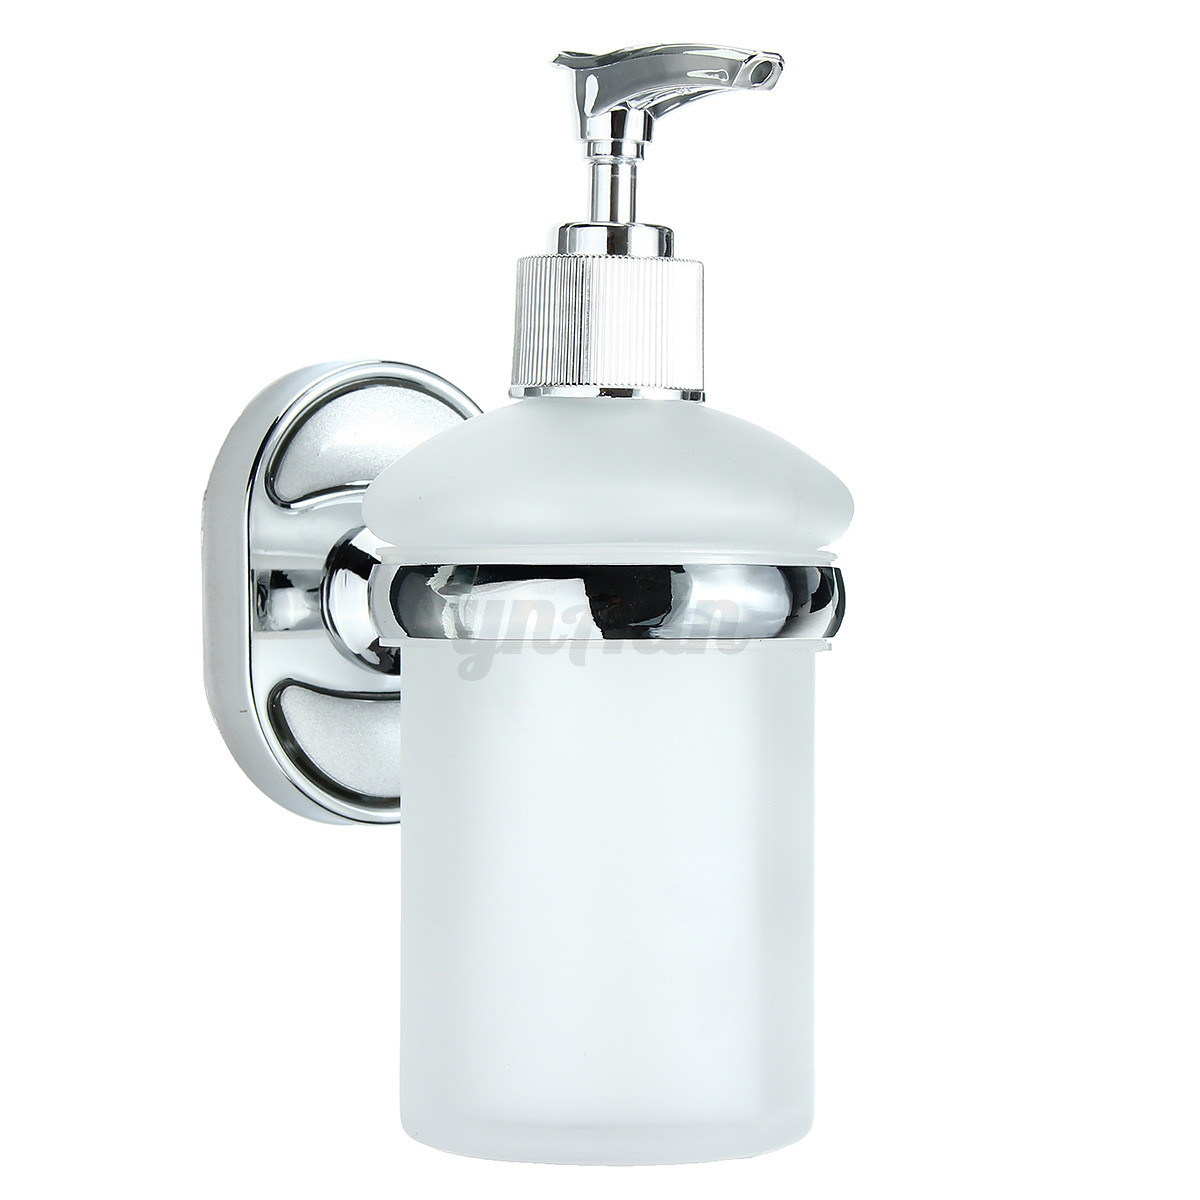 Soap Dispenser Holder Wall Mounted Stainless Chrome Wall Mounted Soap Dispenser Holder